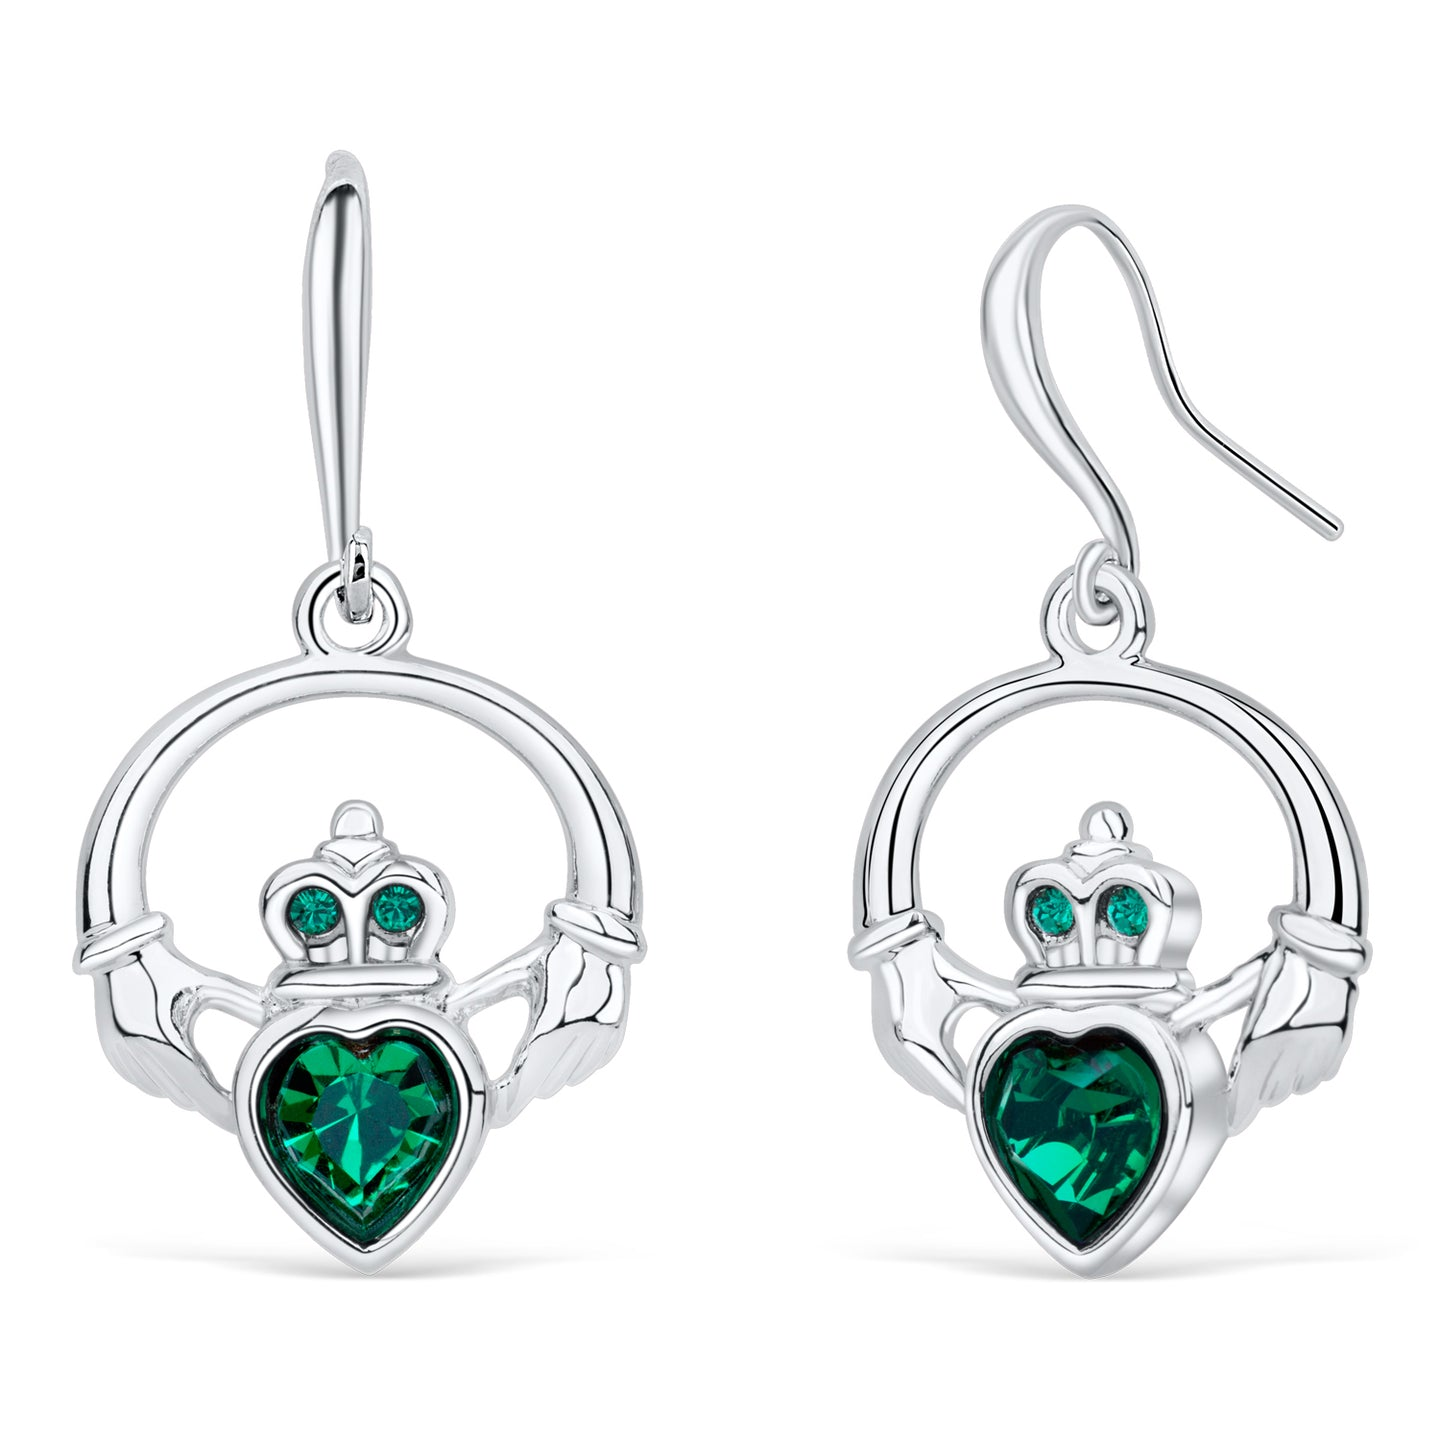 Claddagh Ring Earrings with Emerald Crystal